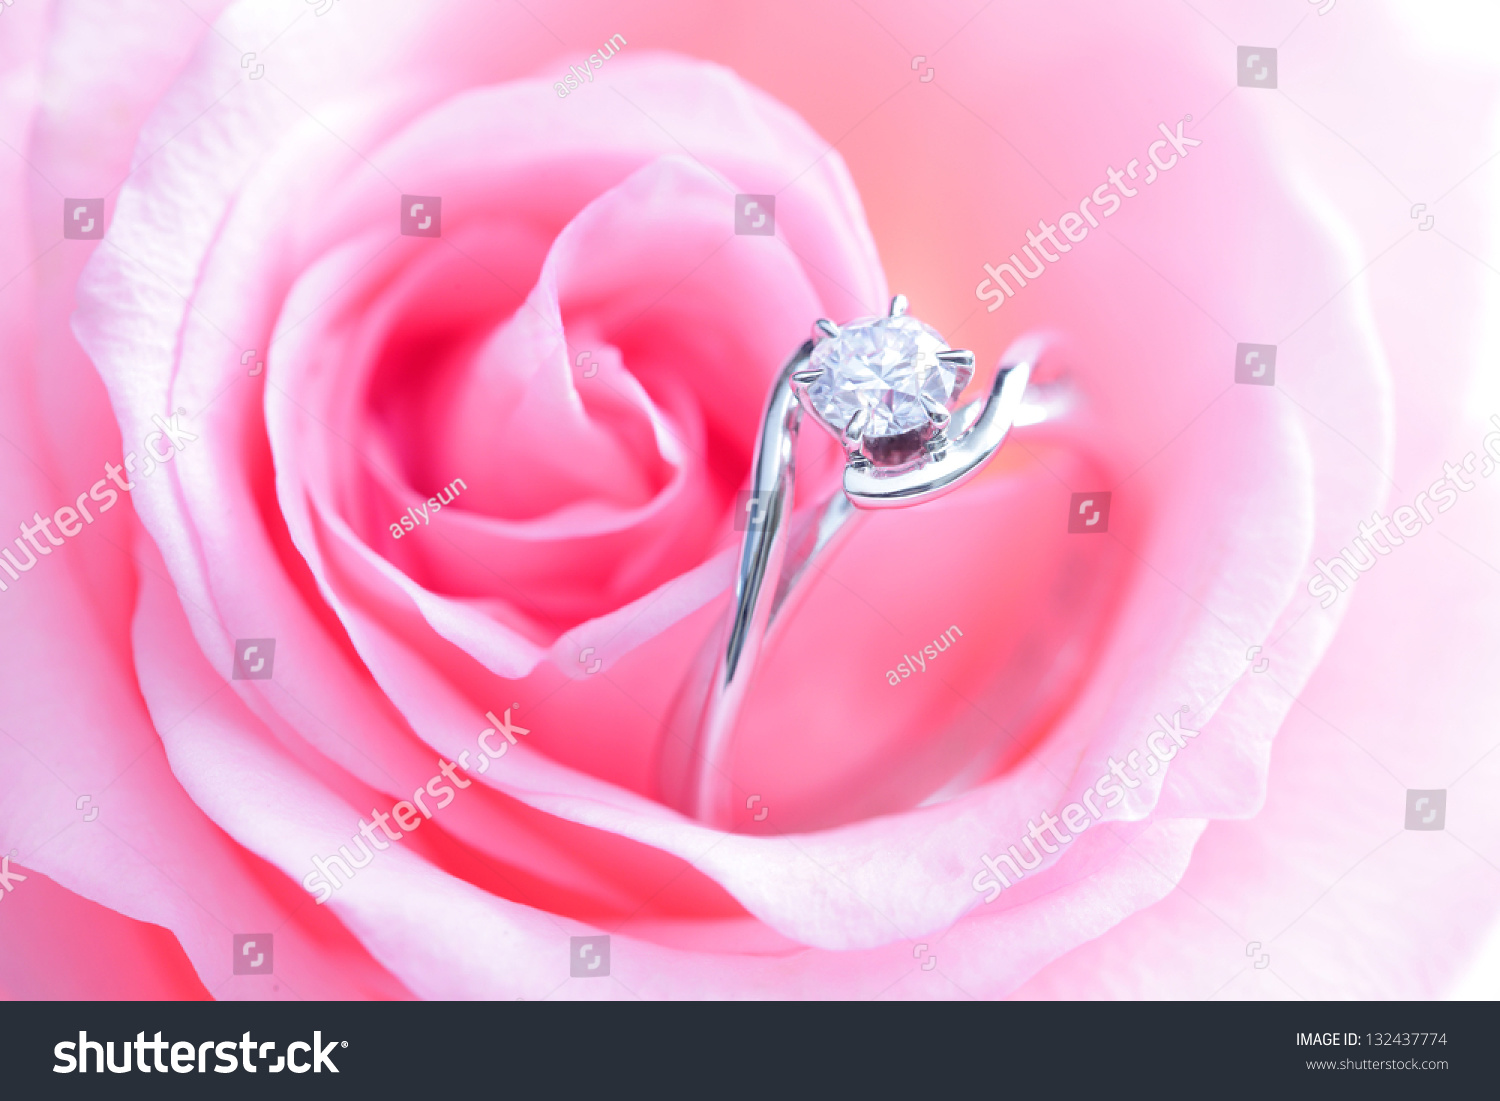 Beautiful Romantic Pink Rose Diamond Wedding Stock Photo (100% Legal ...